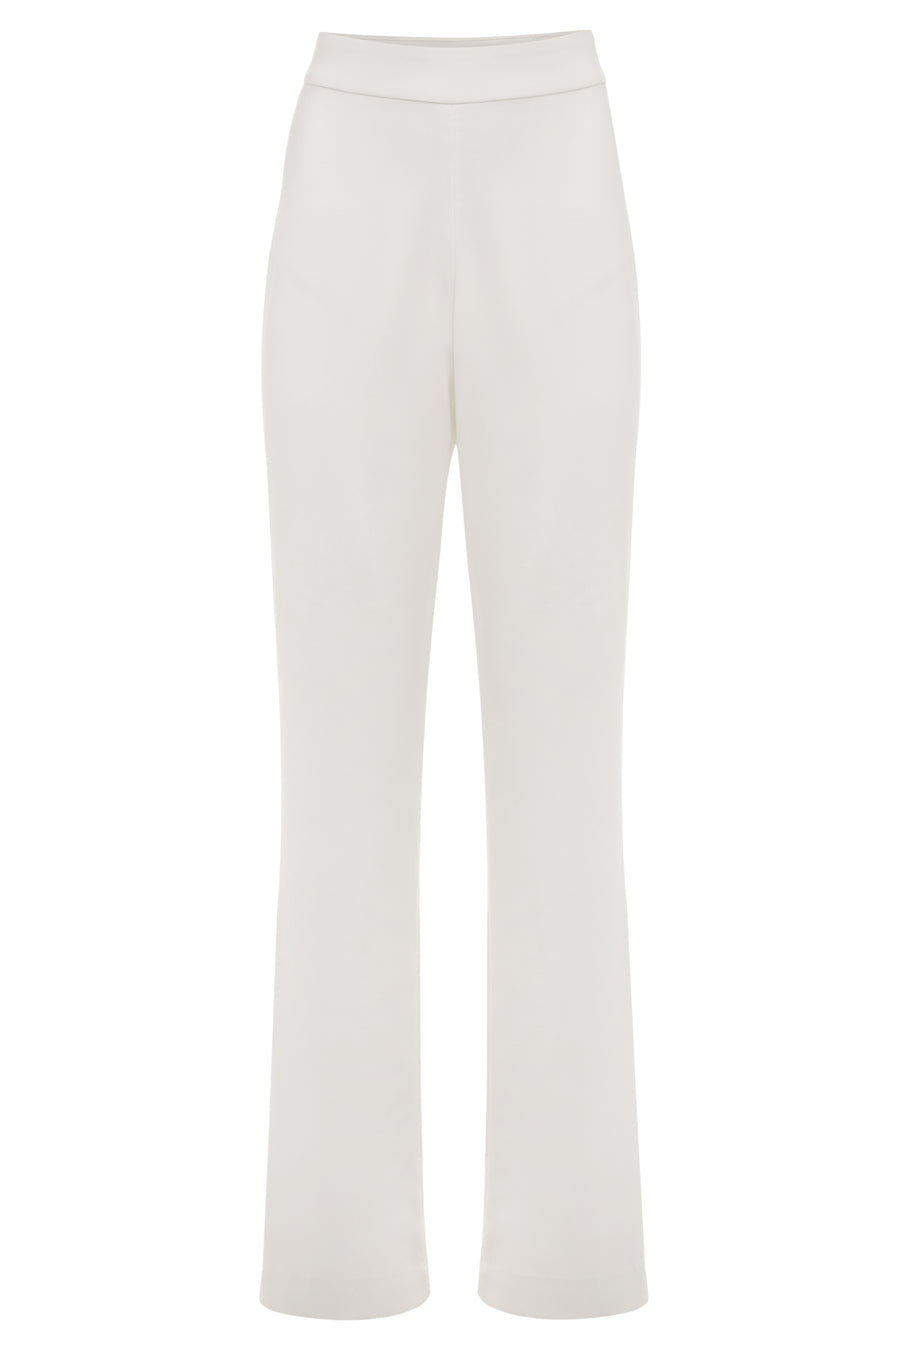 Marley High-Waist Wide-Leg Pant